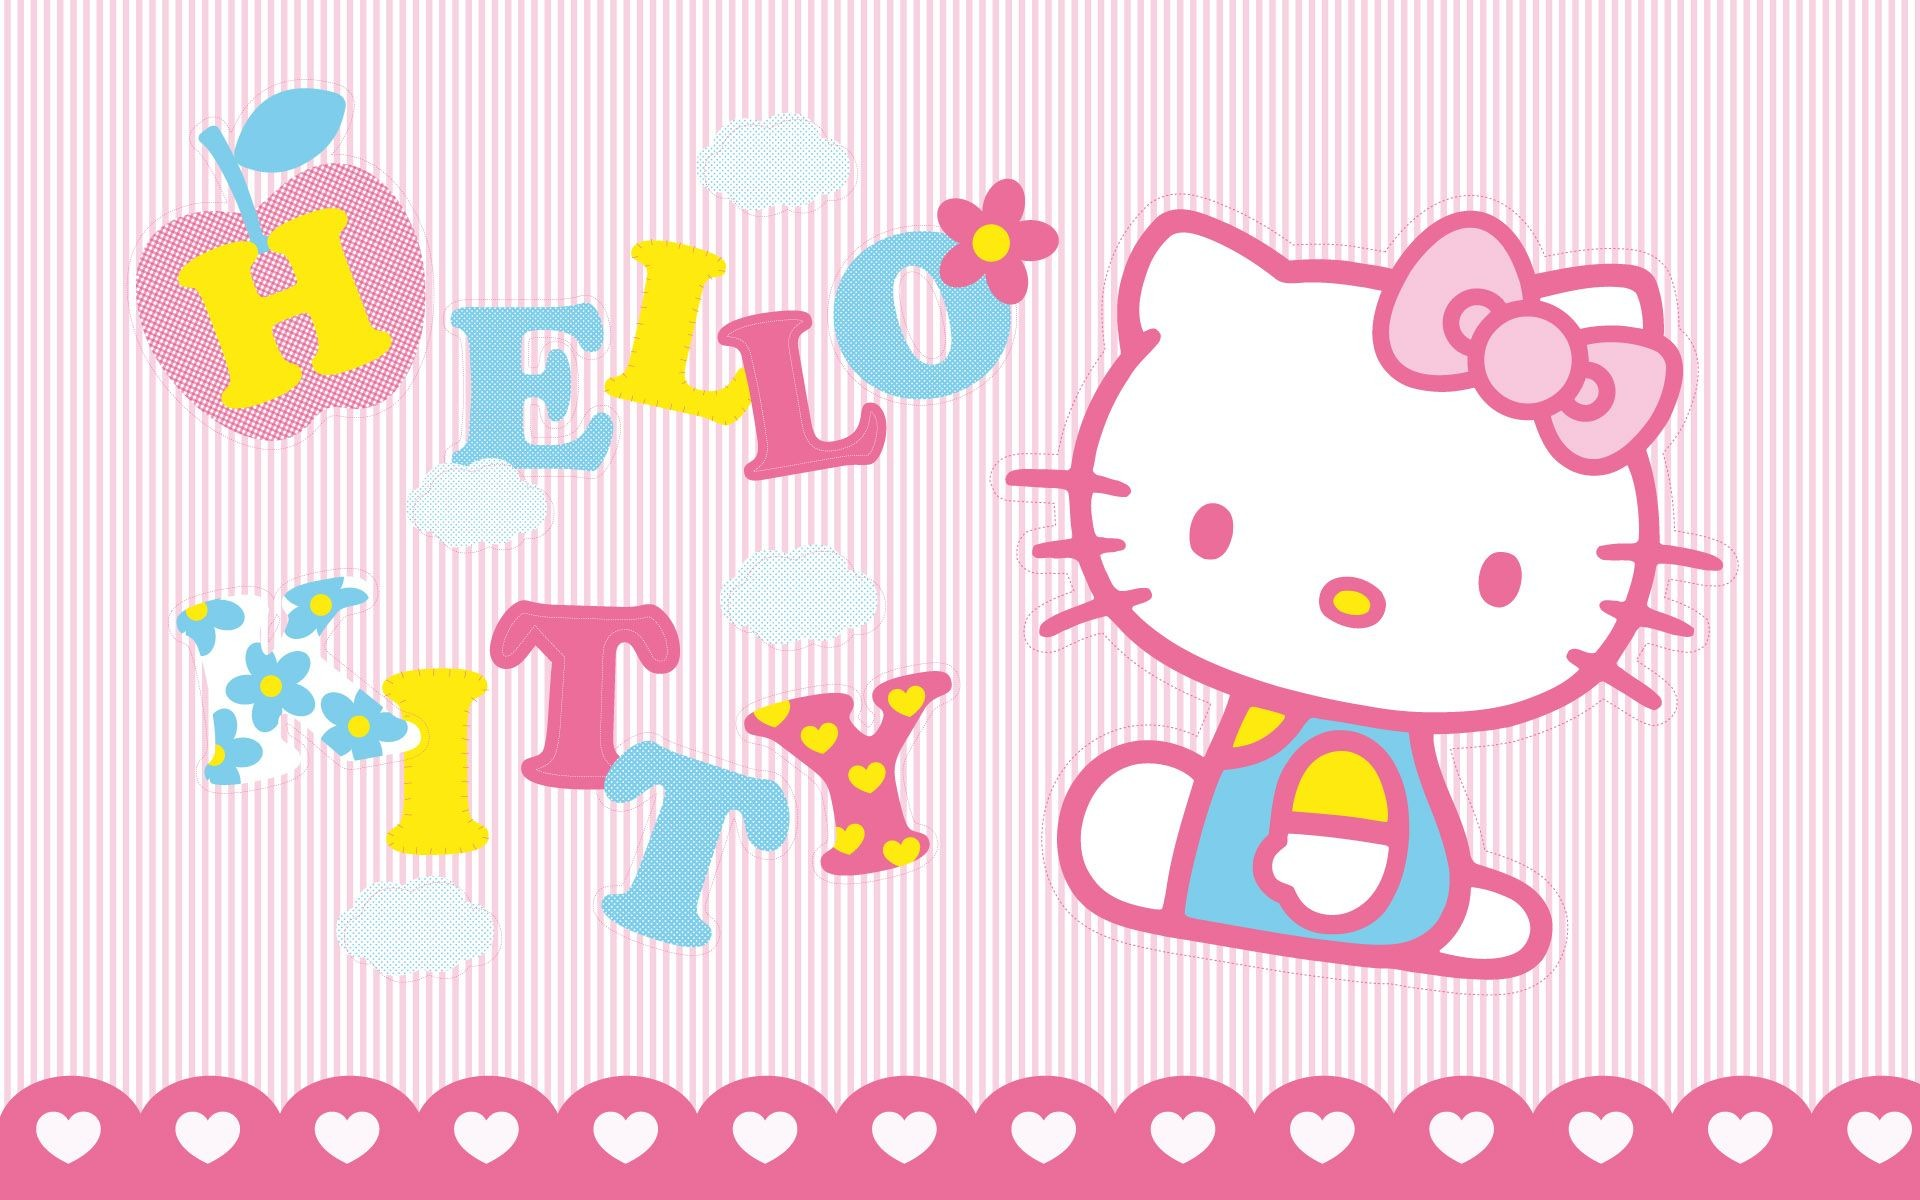 1920x1200 Merry Christmas And Happy New Year Hello Kitty 2 With Background Wallpaper  Very Similar Pink